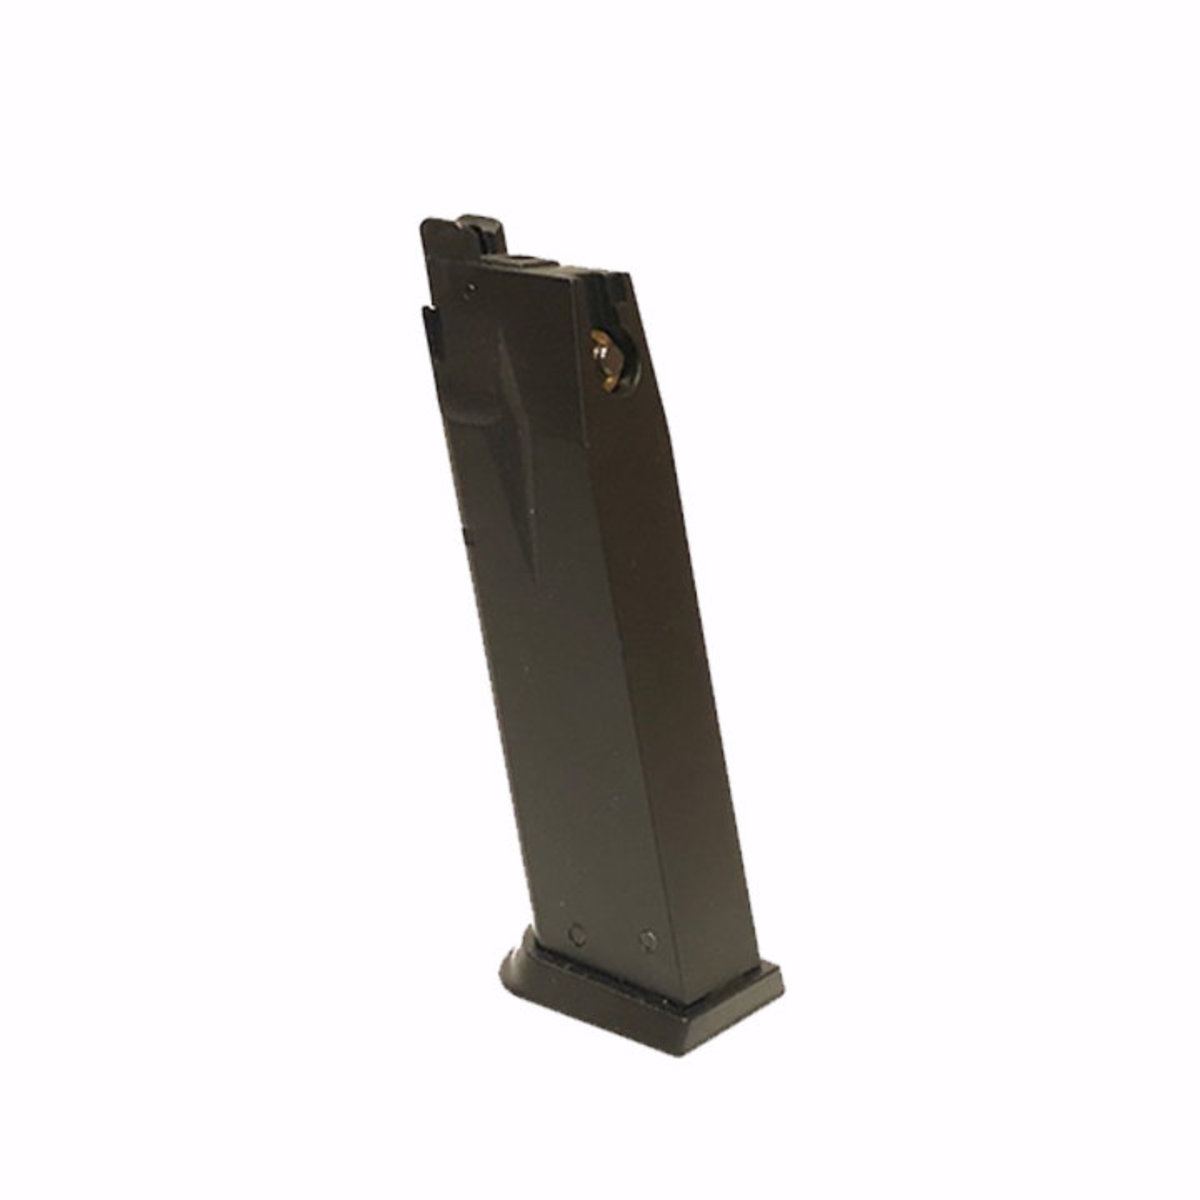 View larger image of Sig Sauer 23rd ProForce P229 GBB Airsoft Magazine